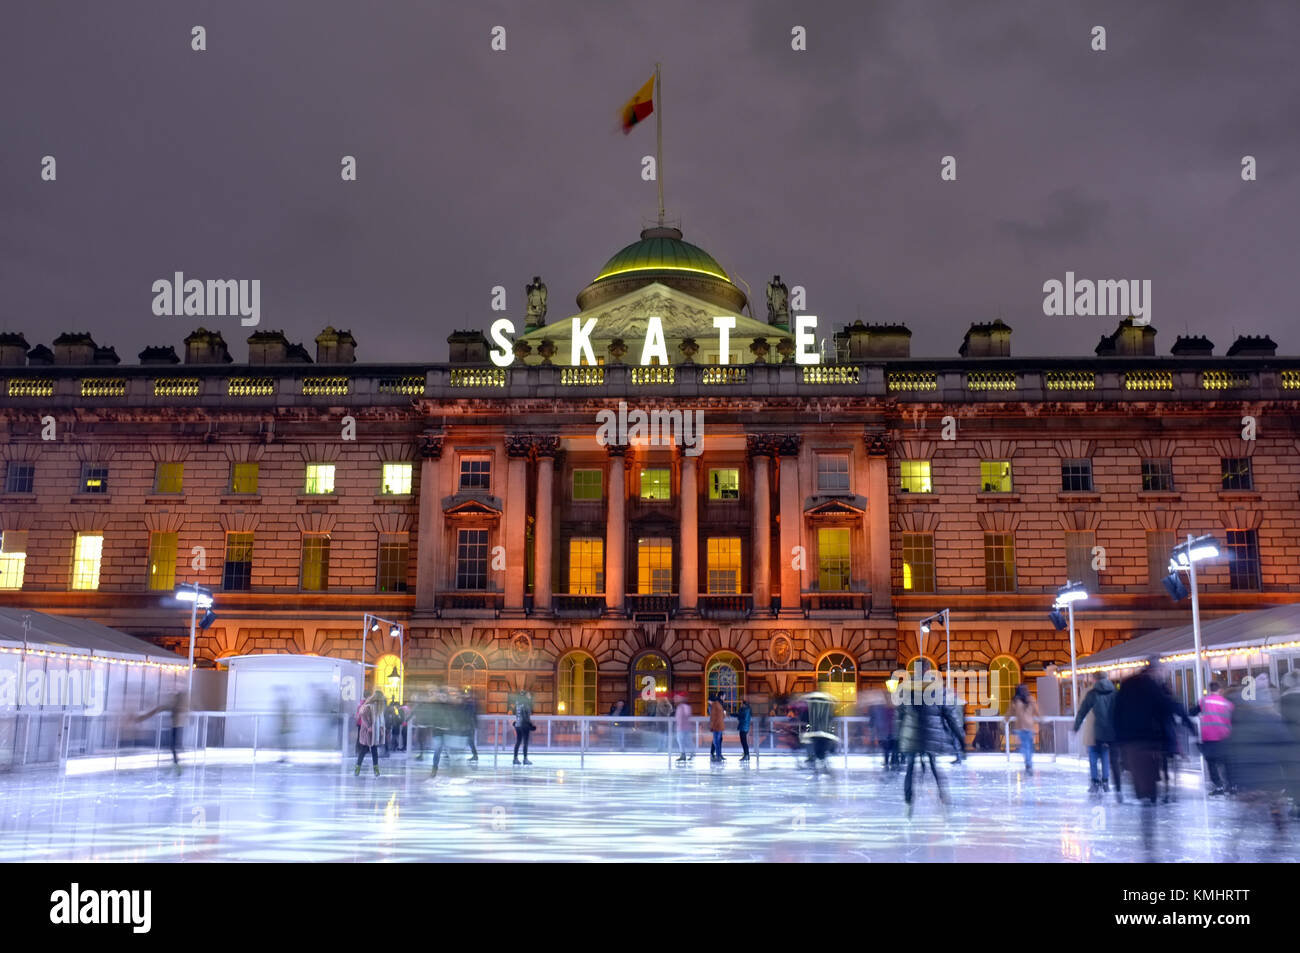 Ice skating rink in the courtyard of Somerset House, London, UK, December 4, 2017 - Stock Image